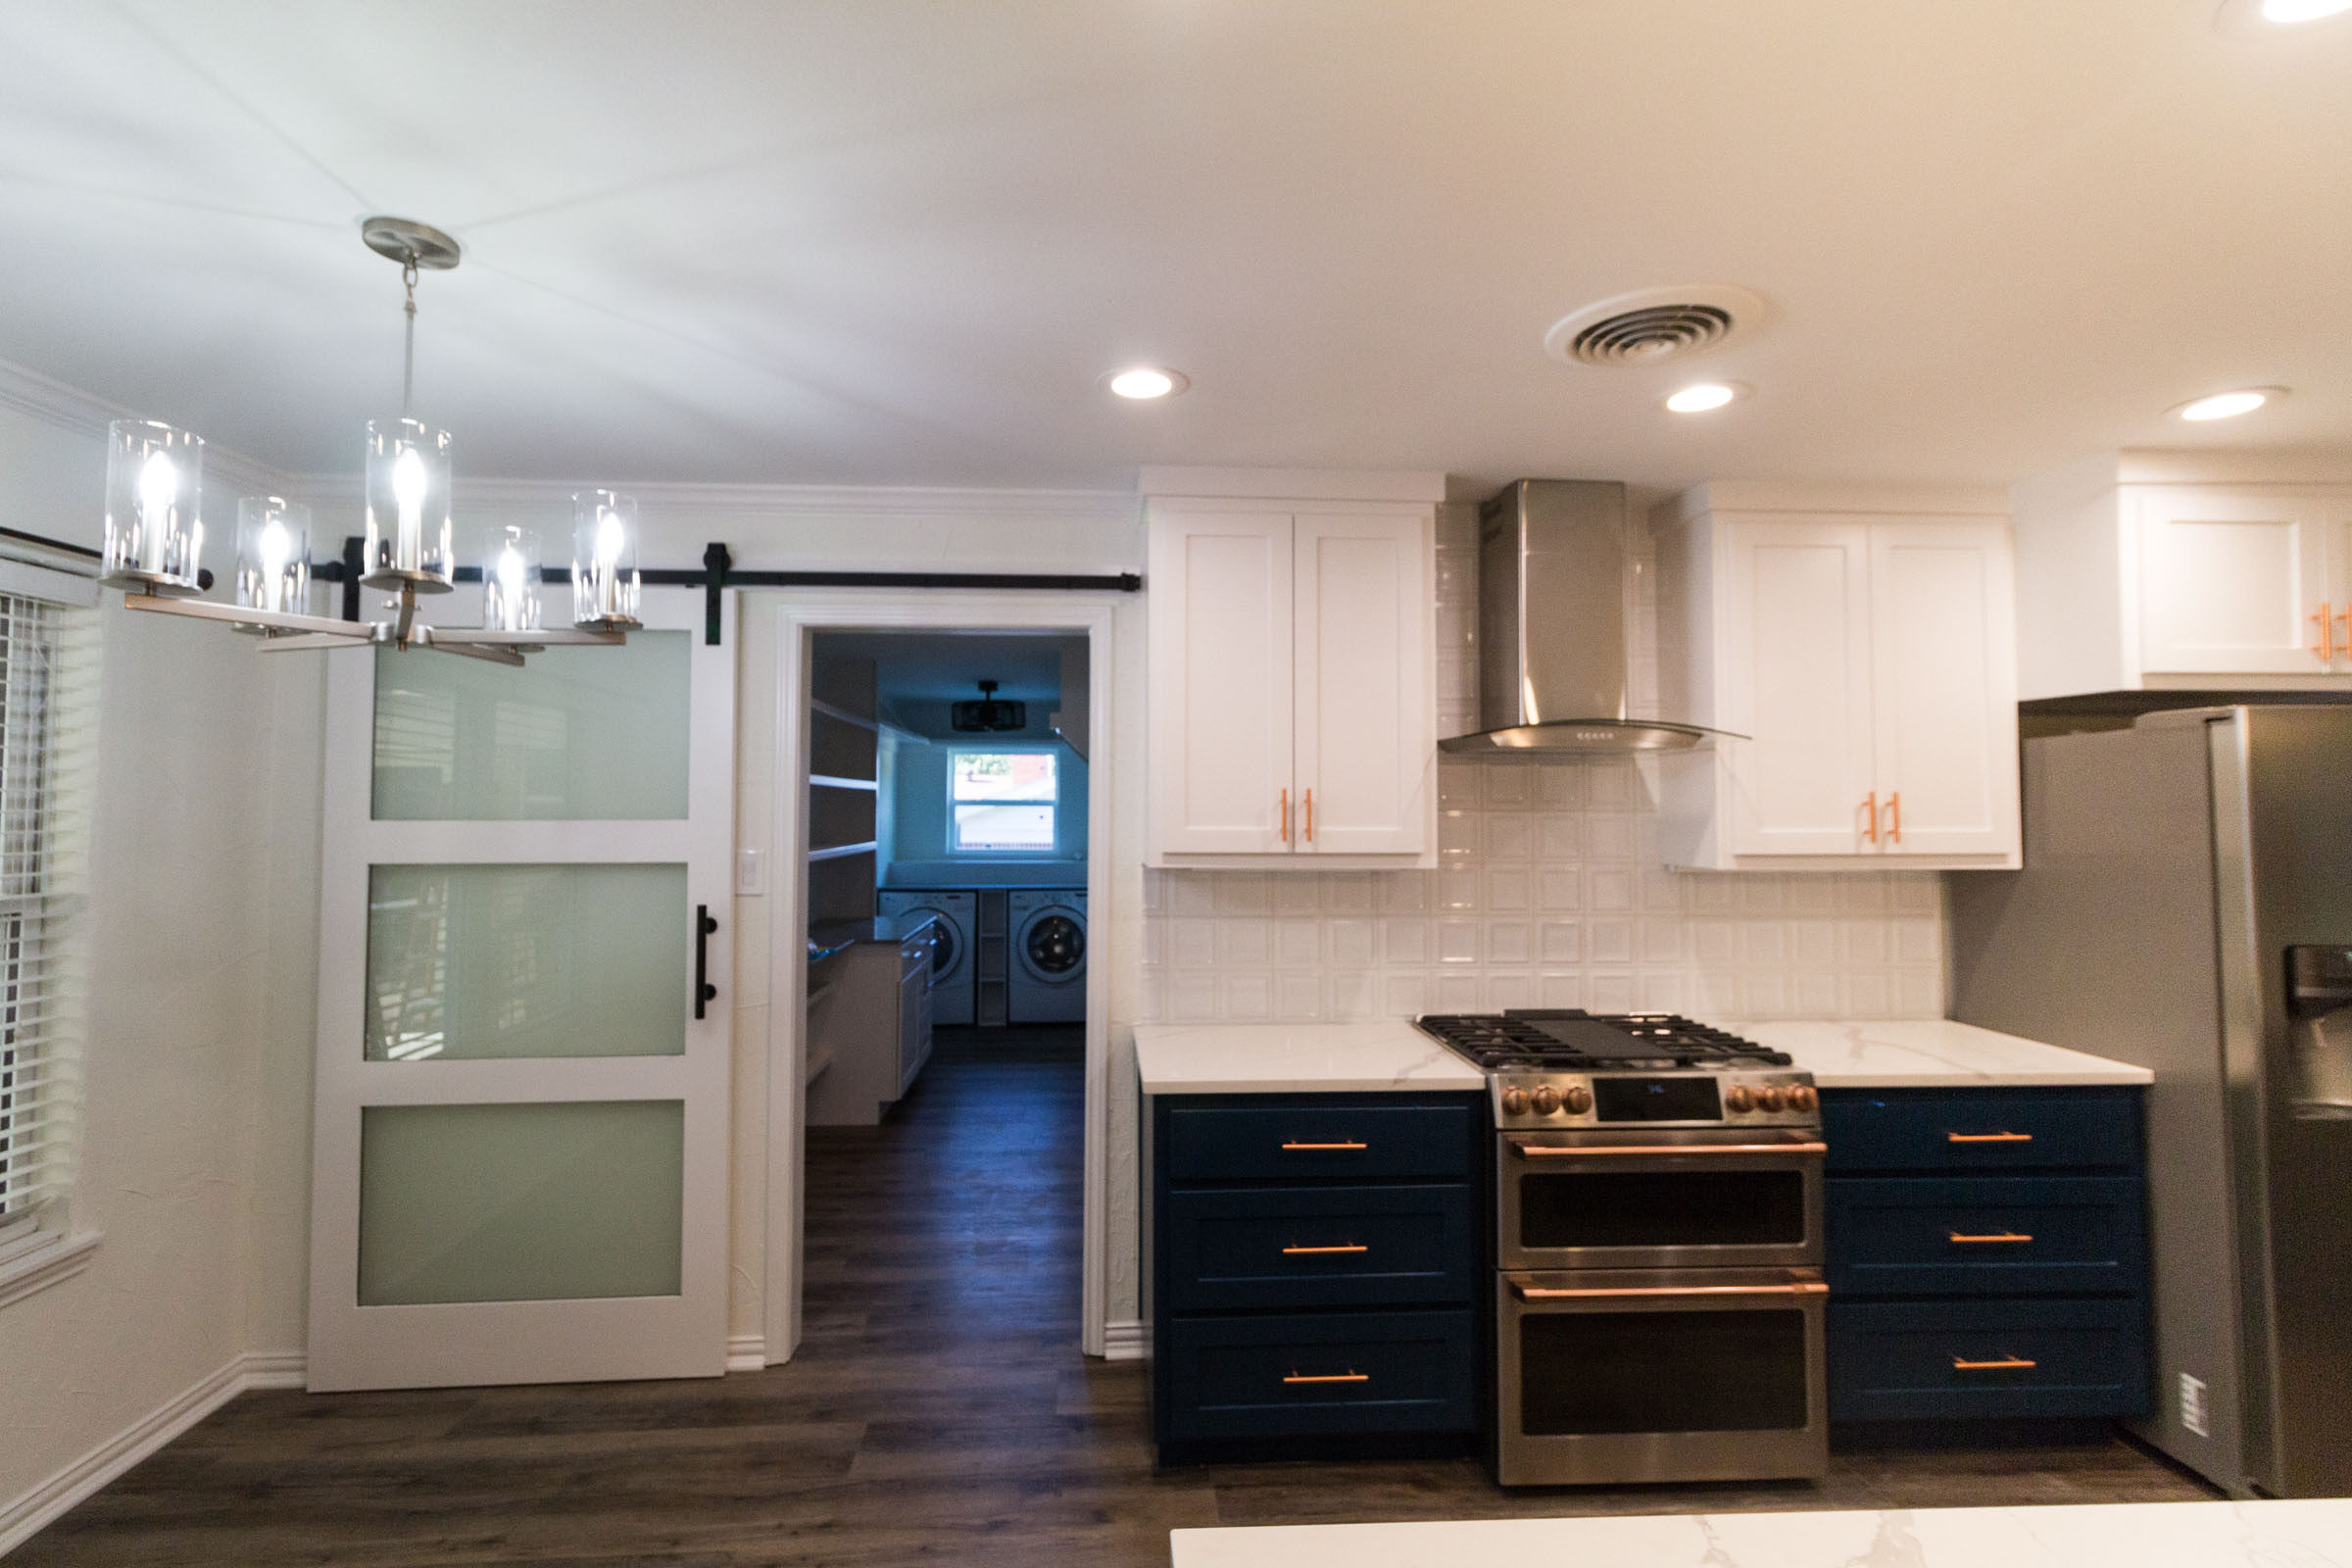 Kitchen and laundry room remodel with sliding door and breakfast nook